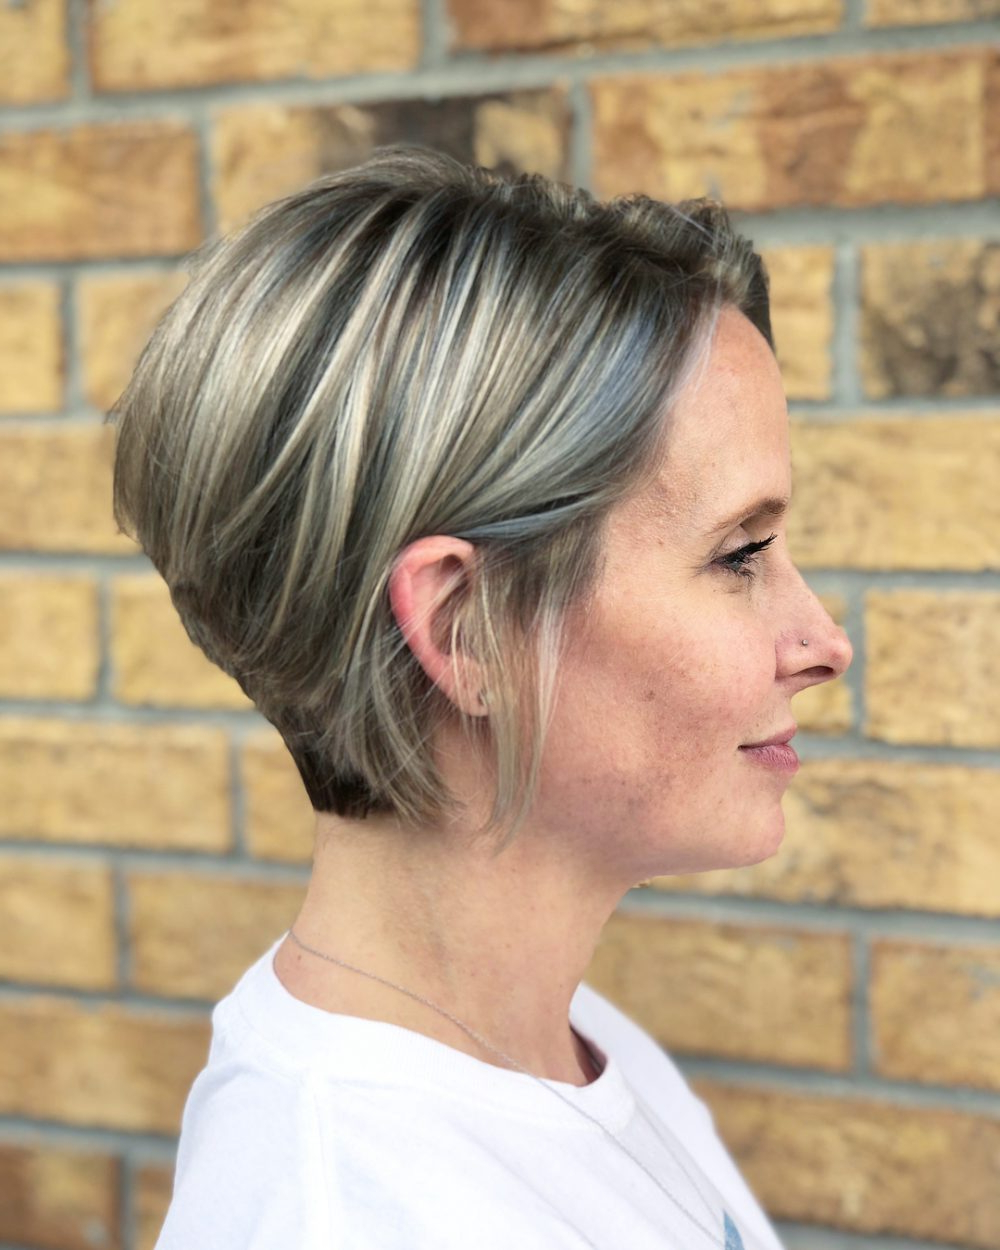 42 Sexiest Short Hairstyles For Women Over 40 In 2018 Within Short Hairstyles For Fine Hair Over  (View 18 of 25)